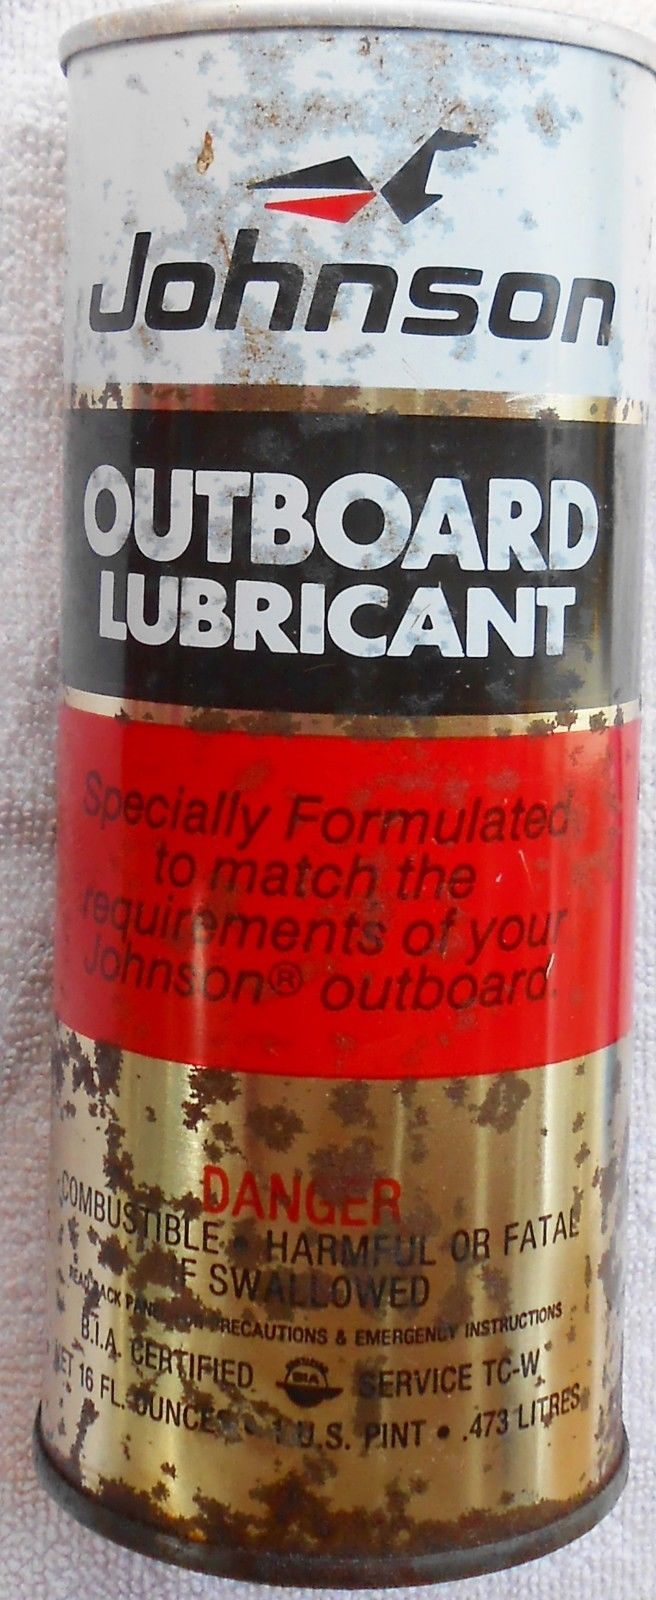 Vintage JOHNSON OUTBOARD LUBRICANT Tin - Empty 1-Pint Can